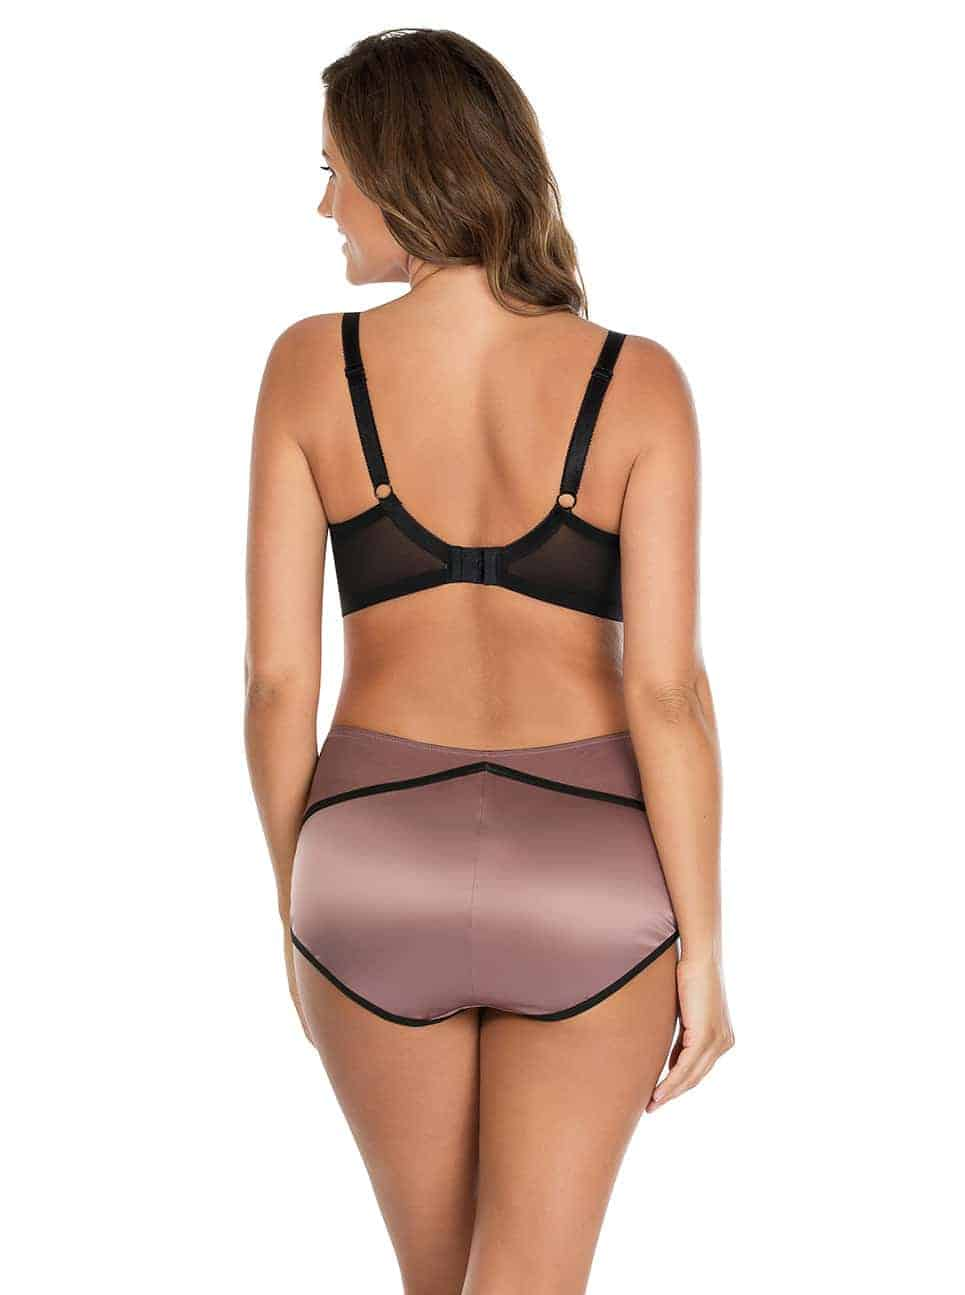 Charlotte PaddedBra6901 HighwaistBrief6917 Woodrose Back - Charlotte Highwaist Brief - Woodrose - 6917